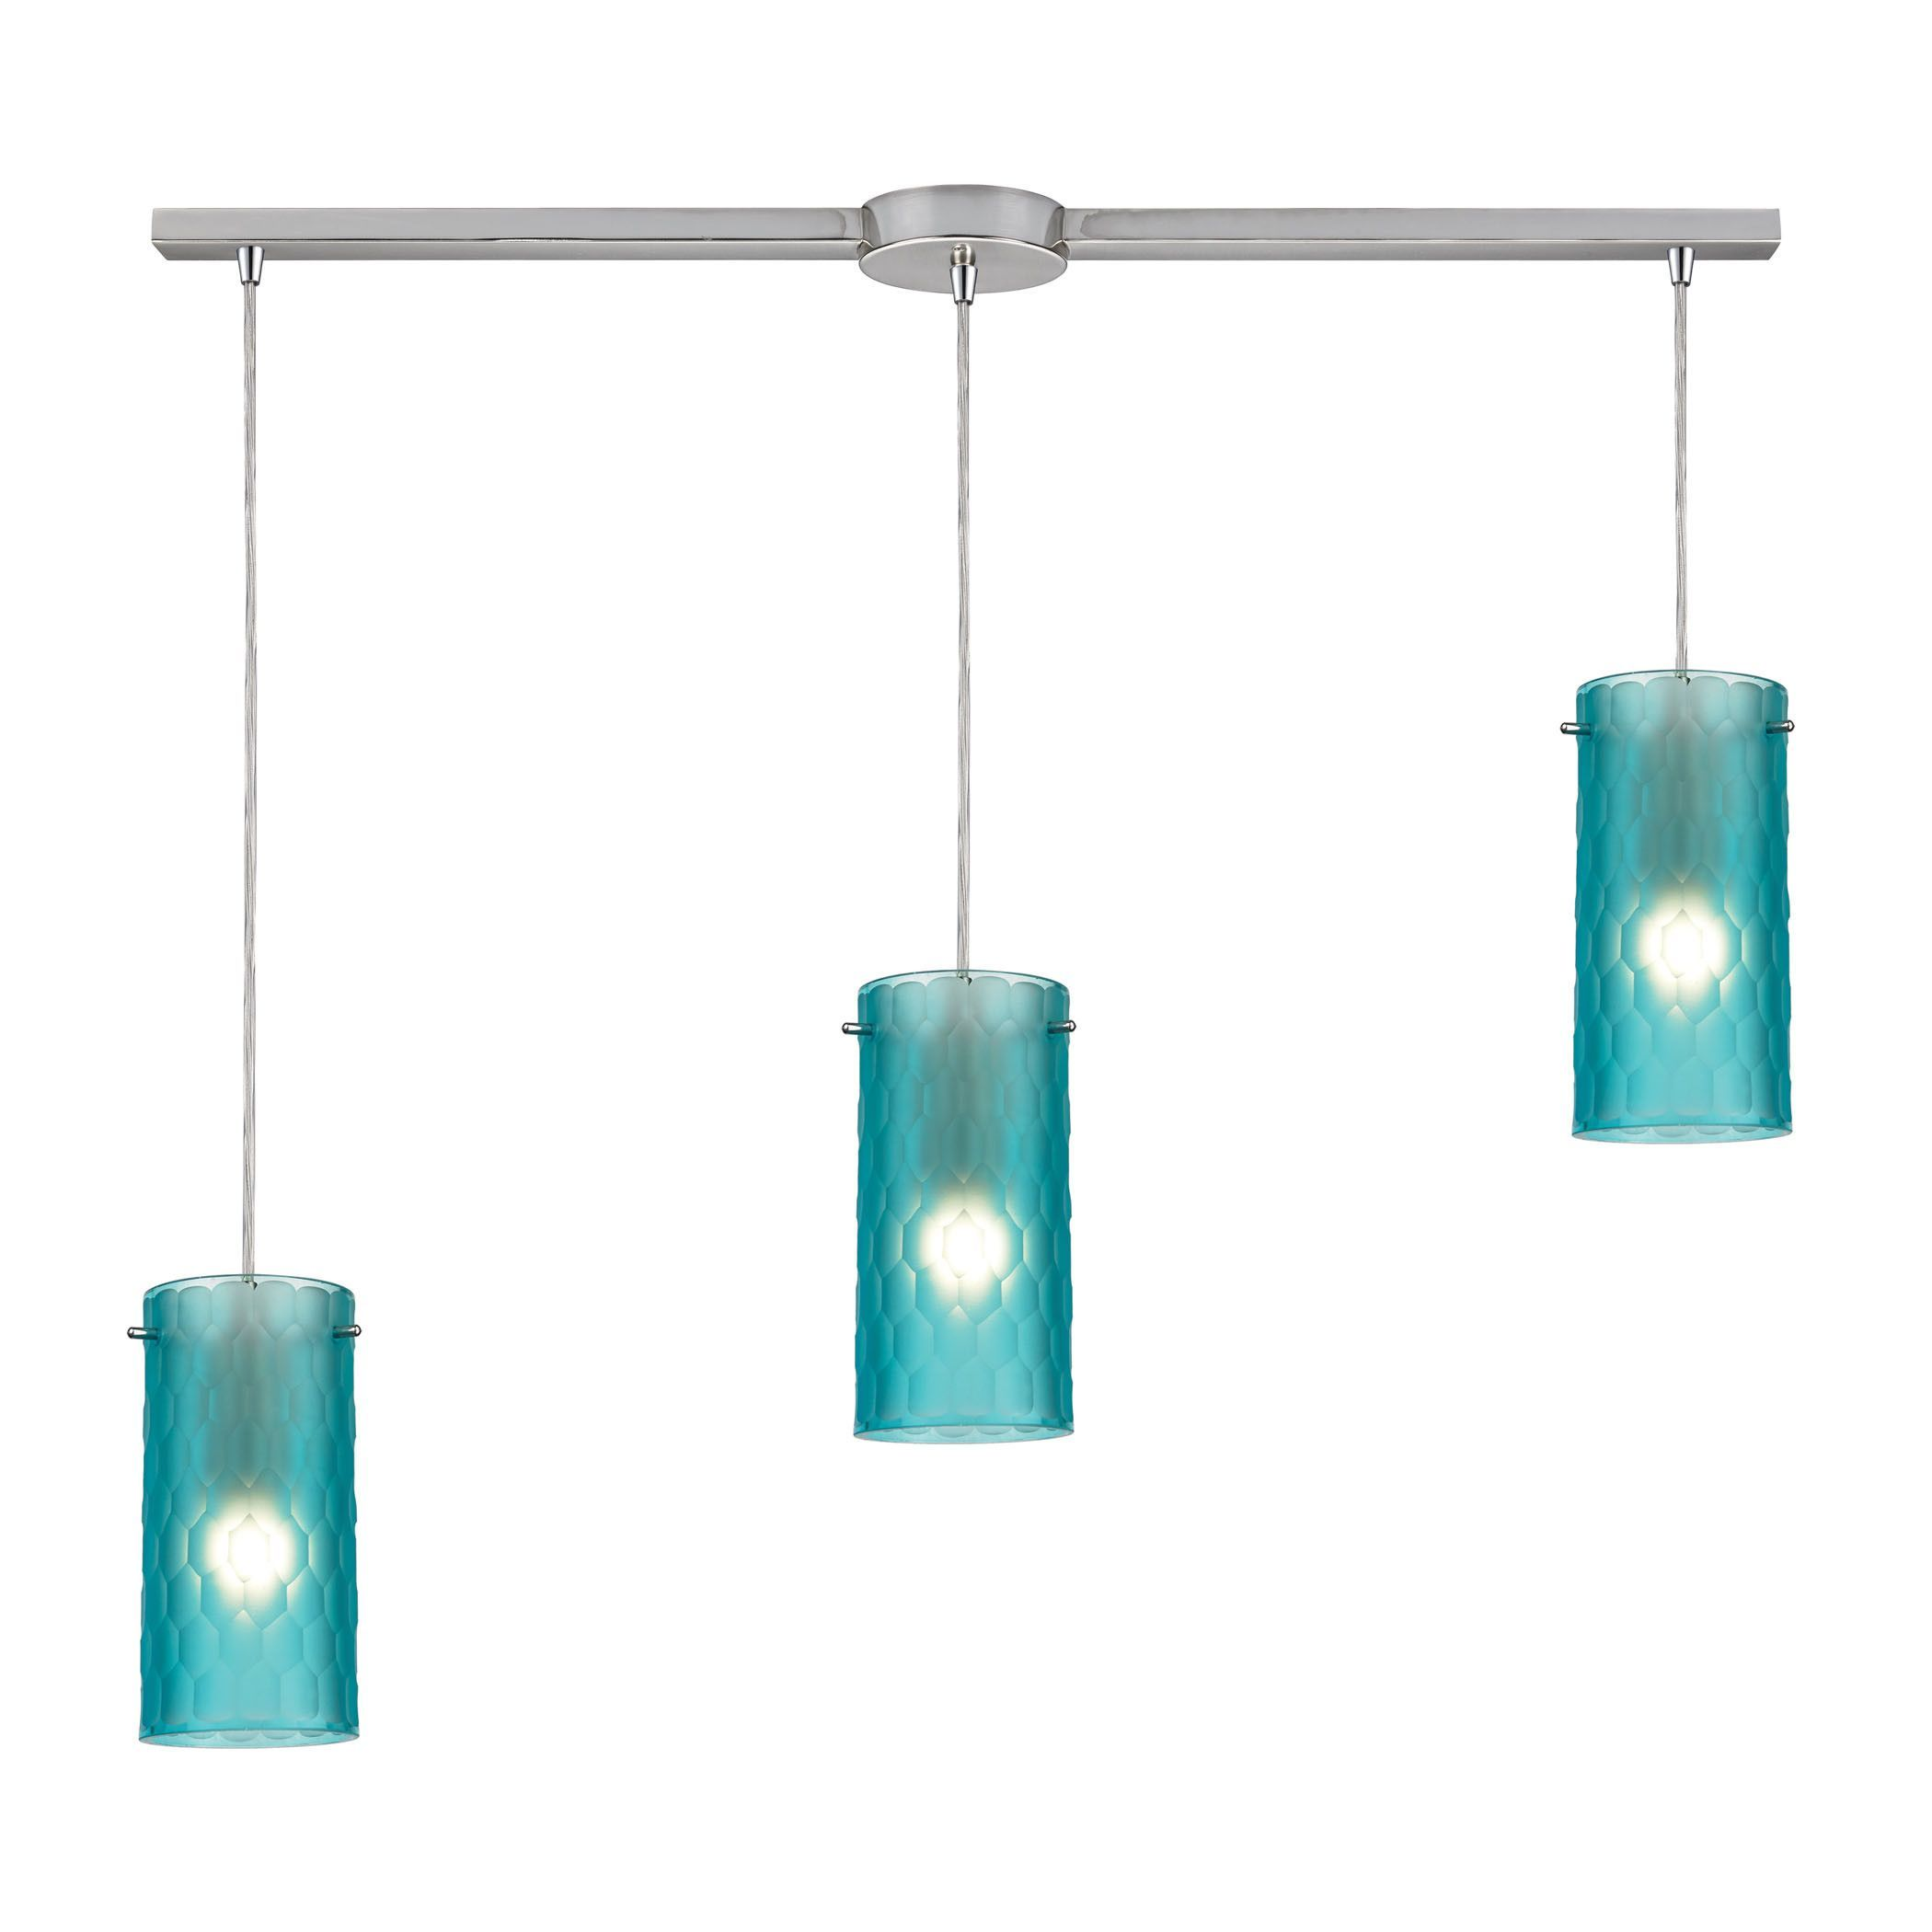 Synthesis light pendant in satin nickel and frosted aqua glass